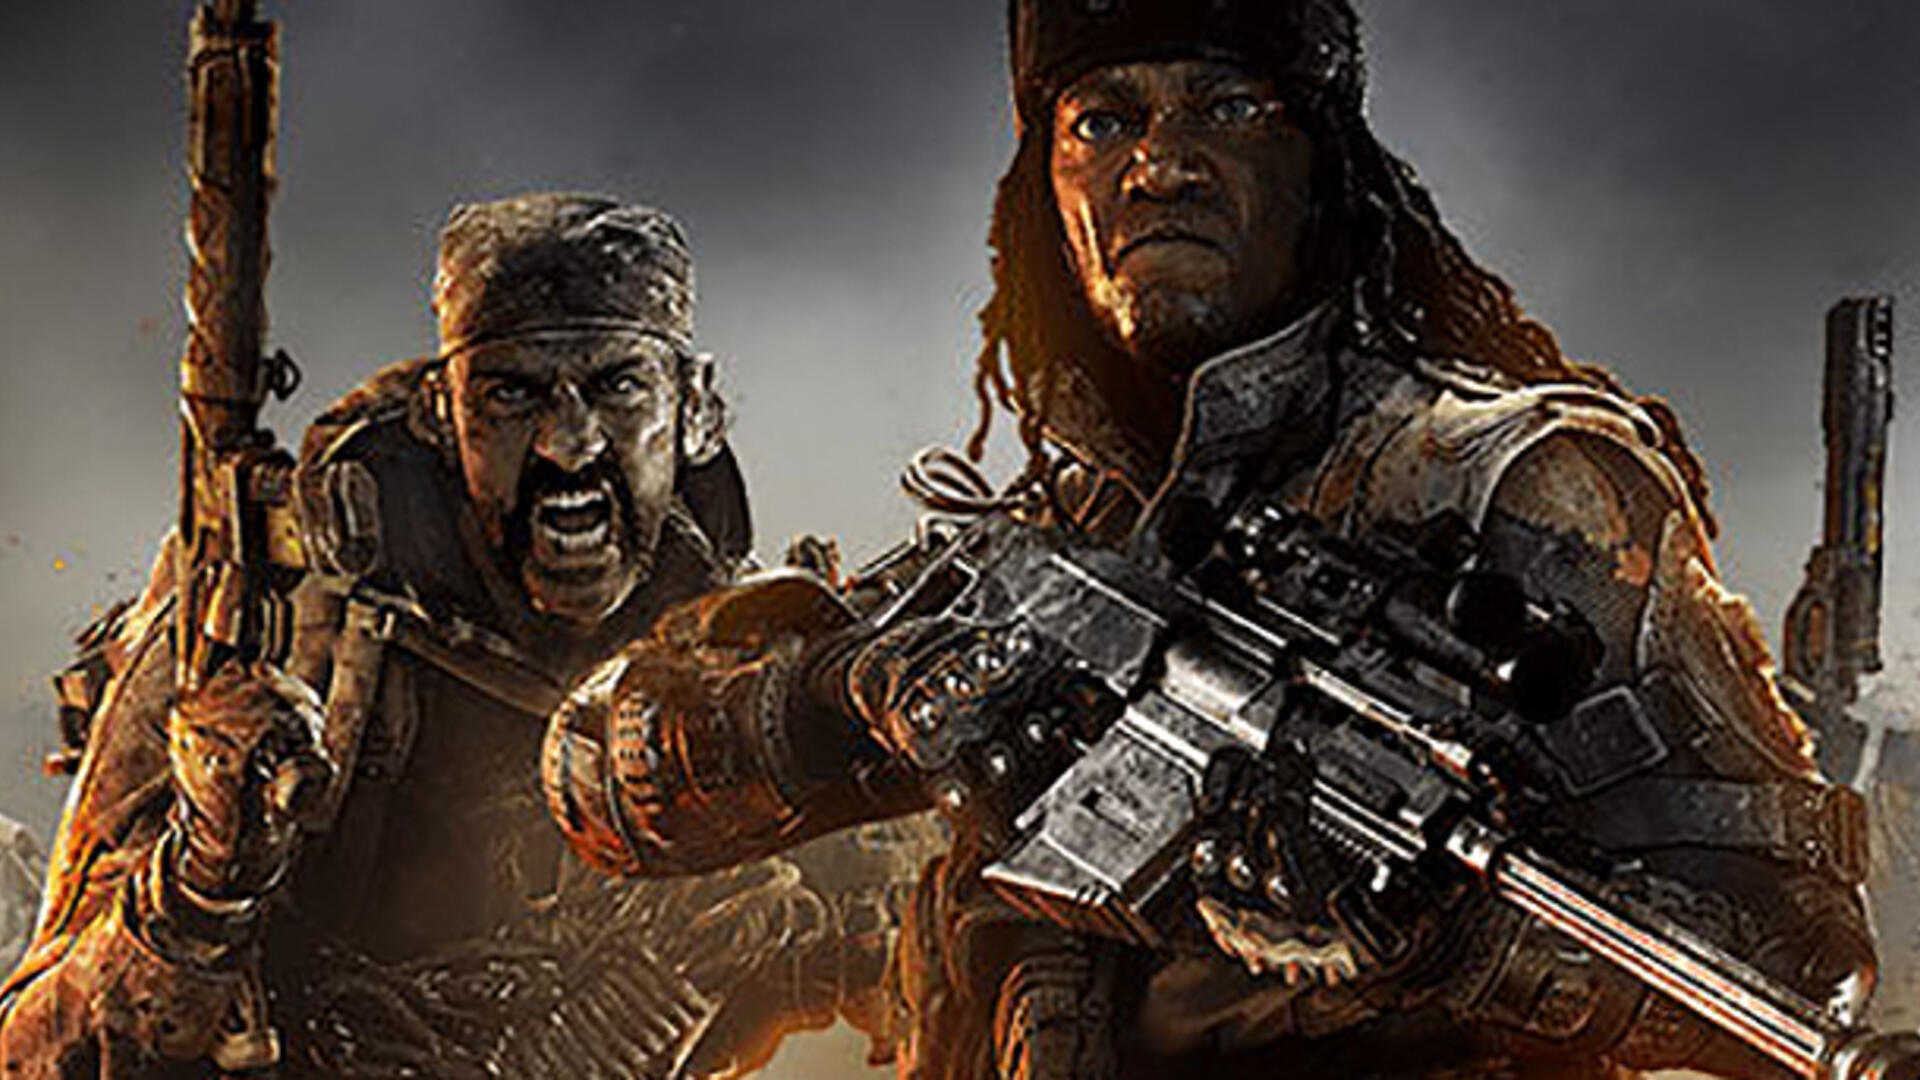 call of duty black ops 4 download slow